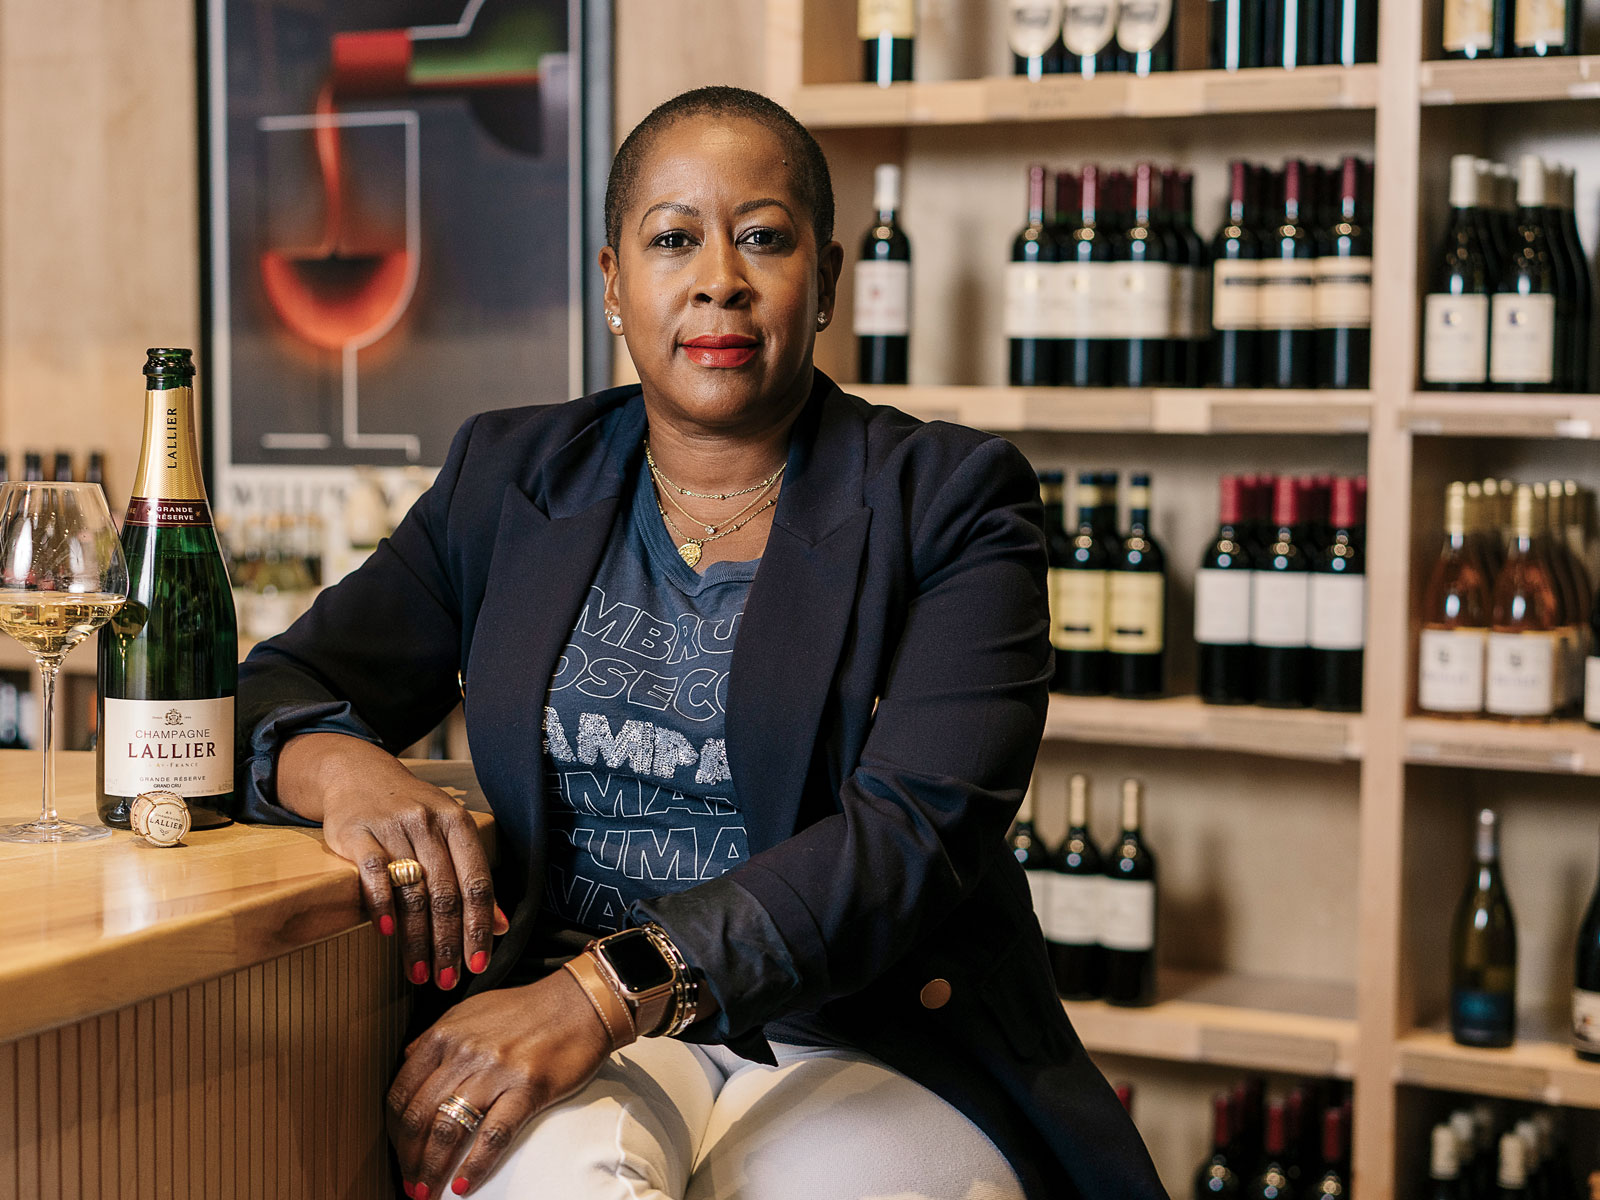 Writer Julia Coney on Demystifying Wine and Breaking Through Barriers